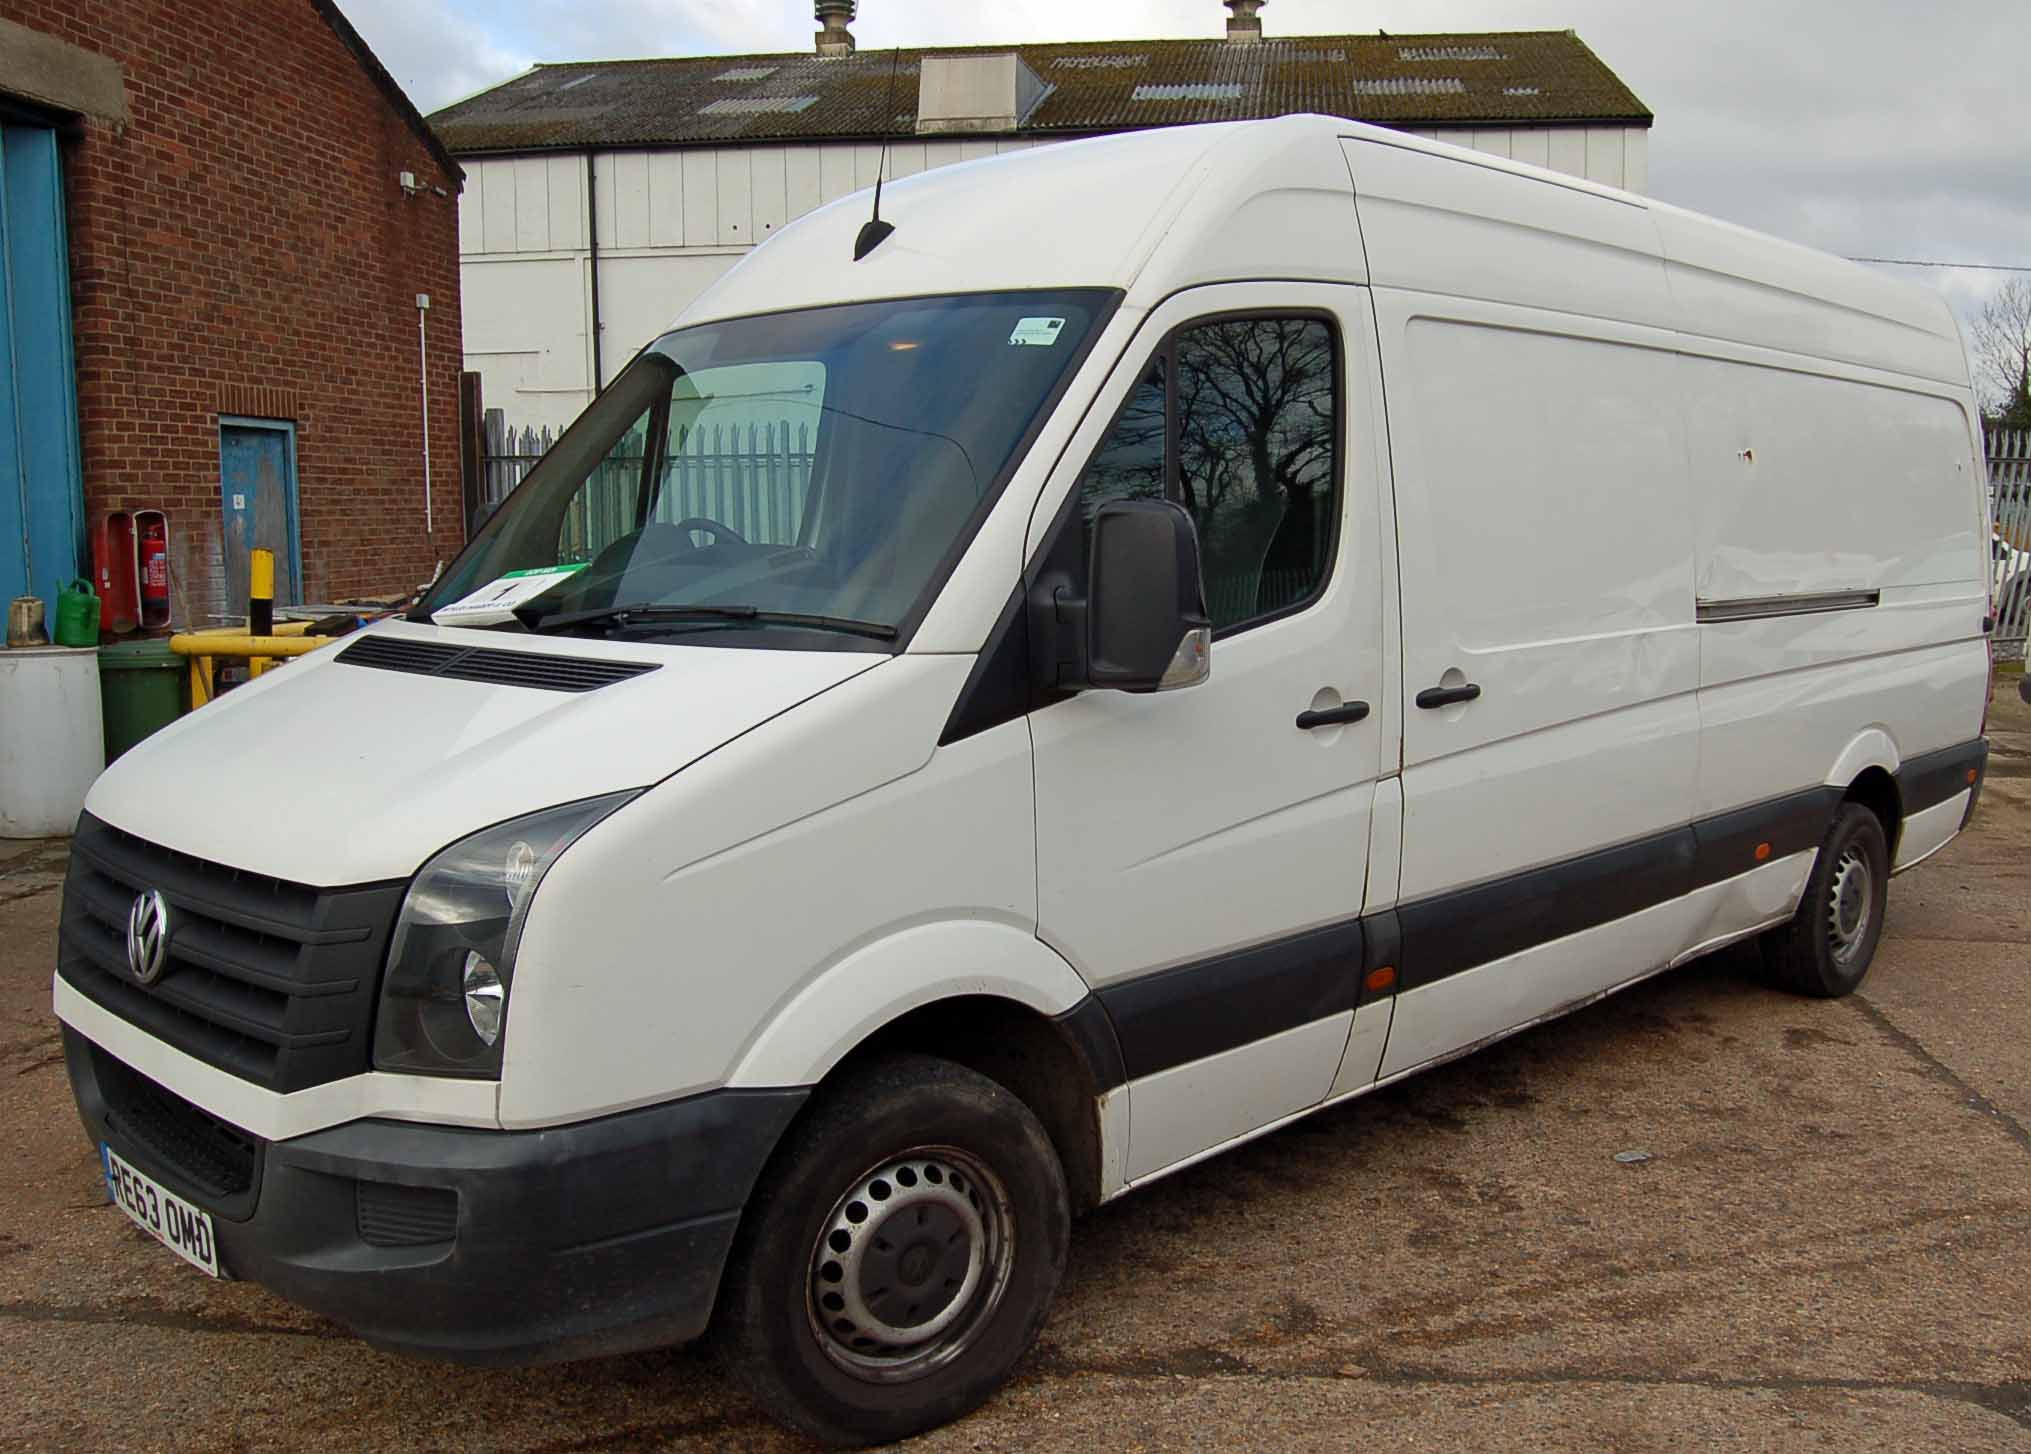 Lot 1 - A VOLKSWAGEN Crafter CR35 109 2.0 TDi Bluemotion, 6-Speed, Diesel Panel Van, Registration No. RE63